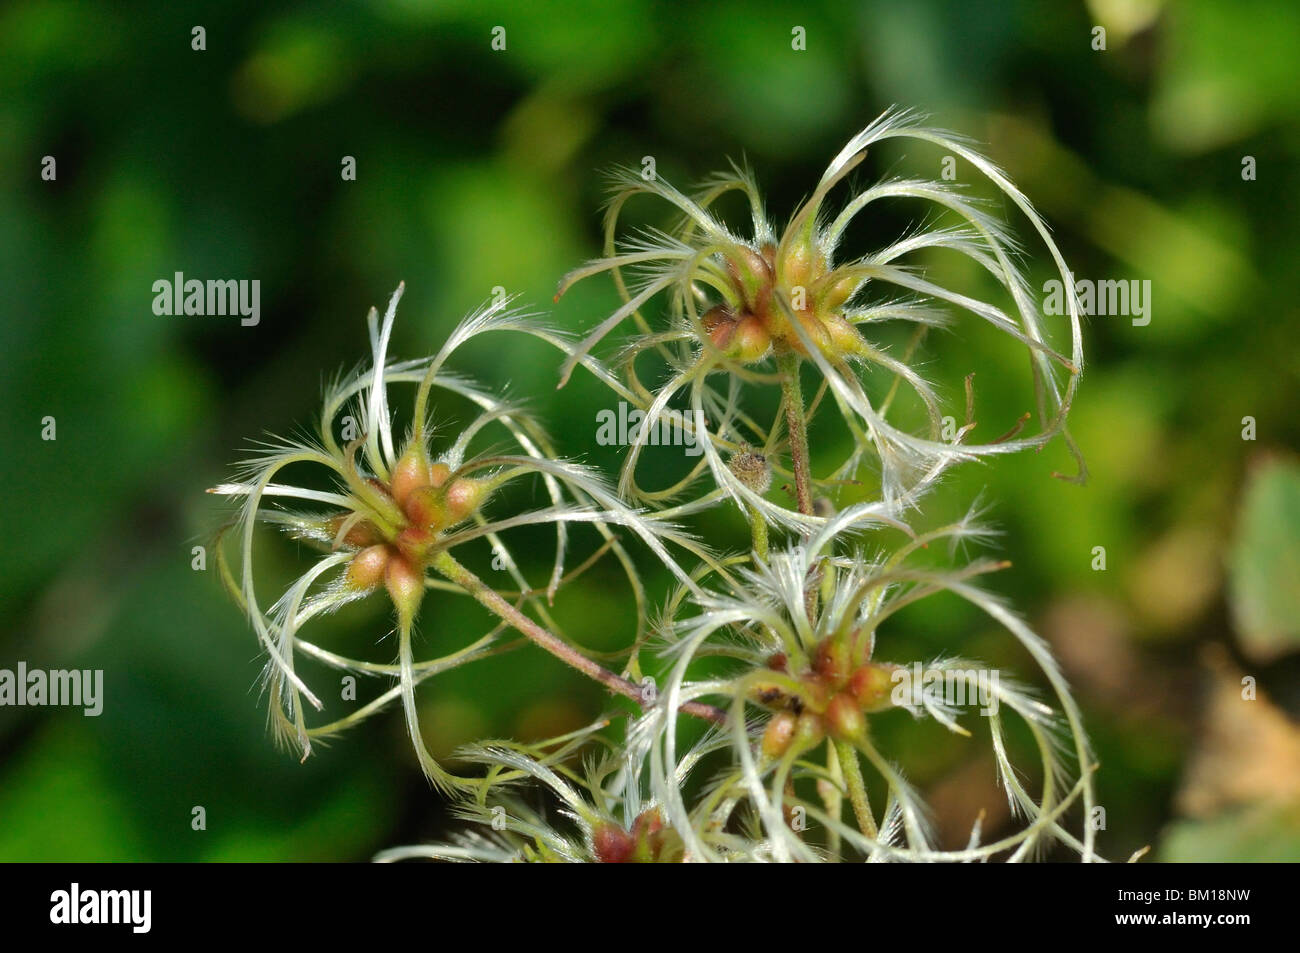 Clematis seeds - Stock Image